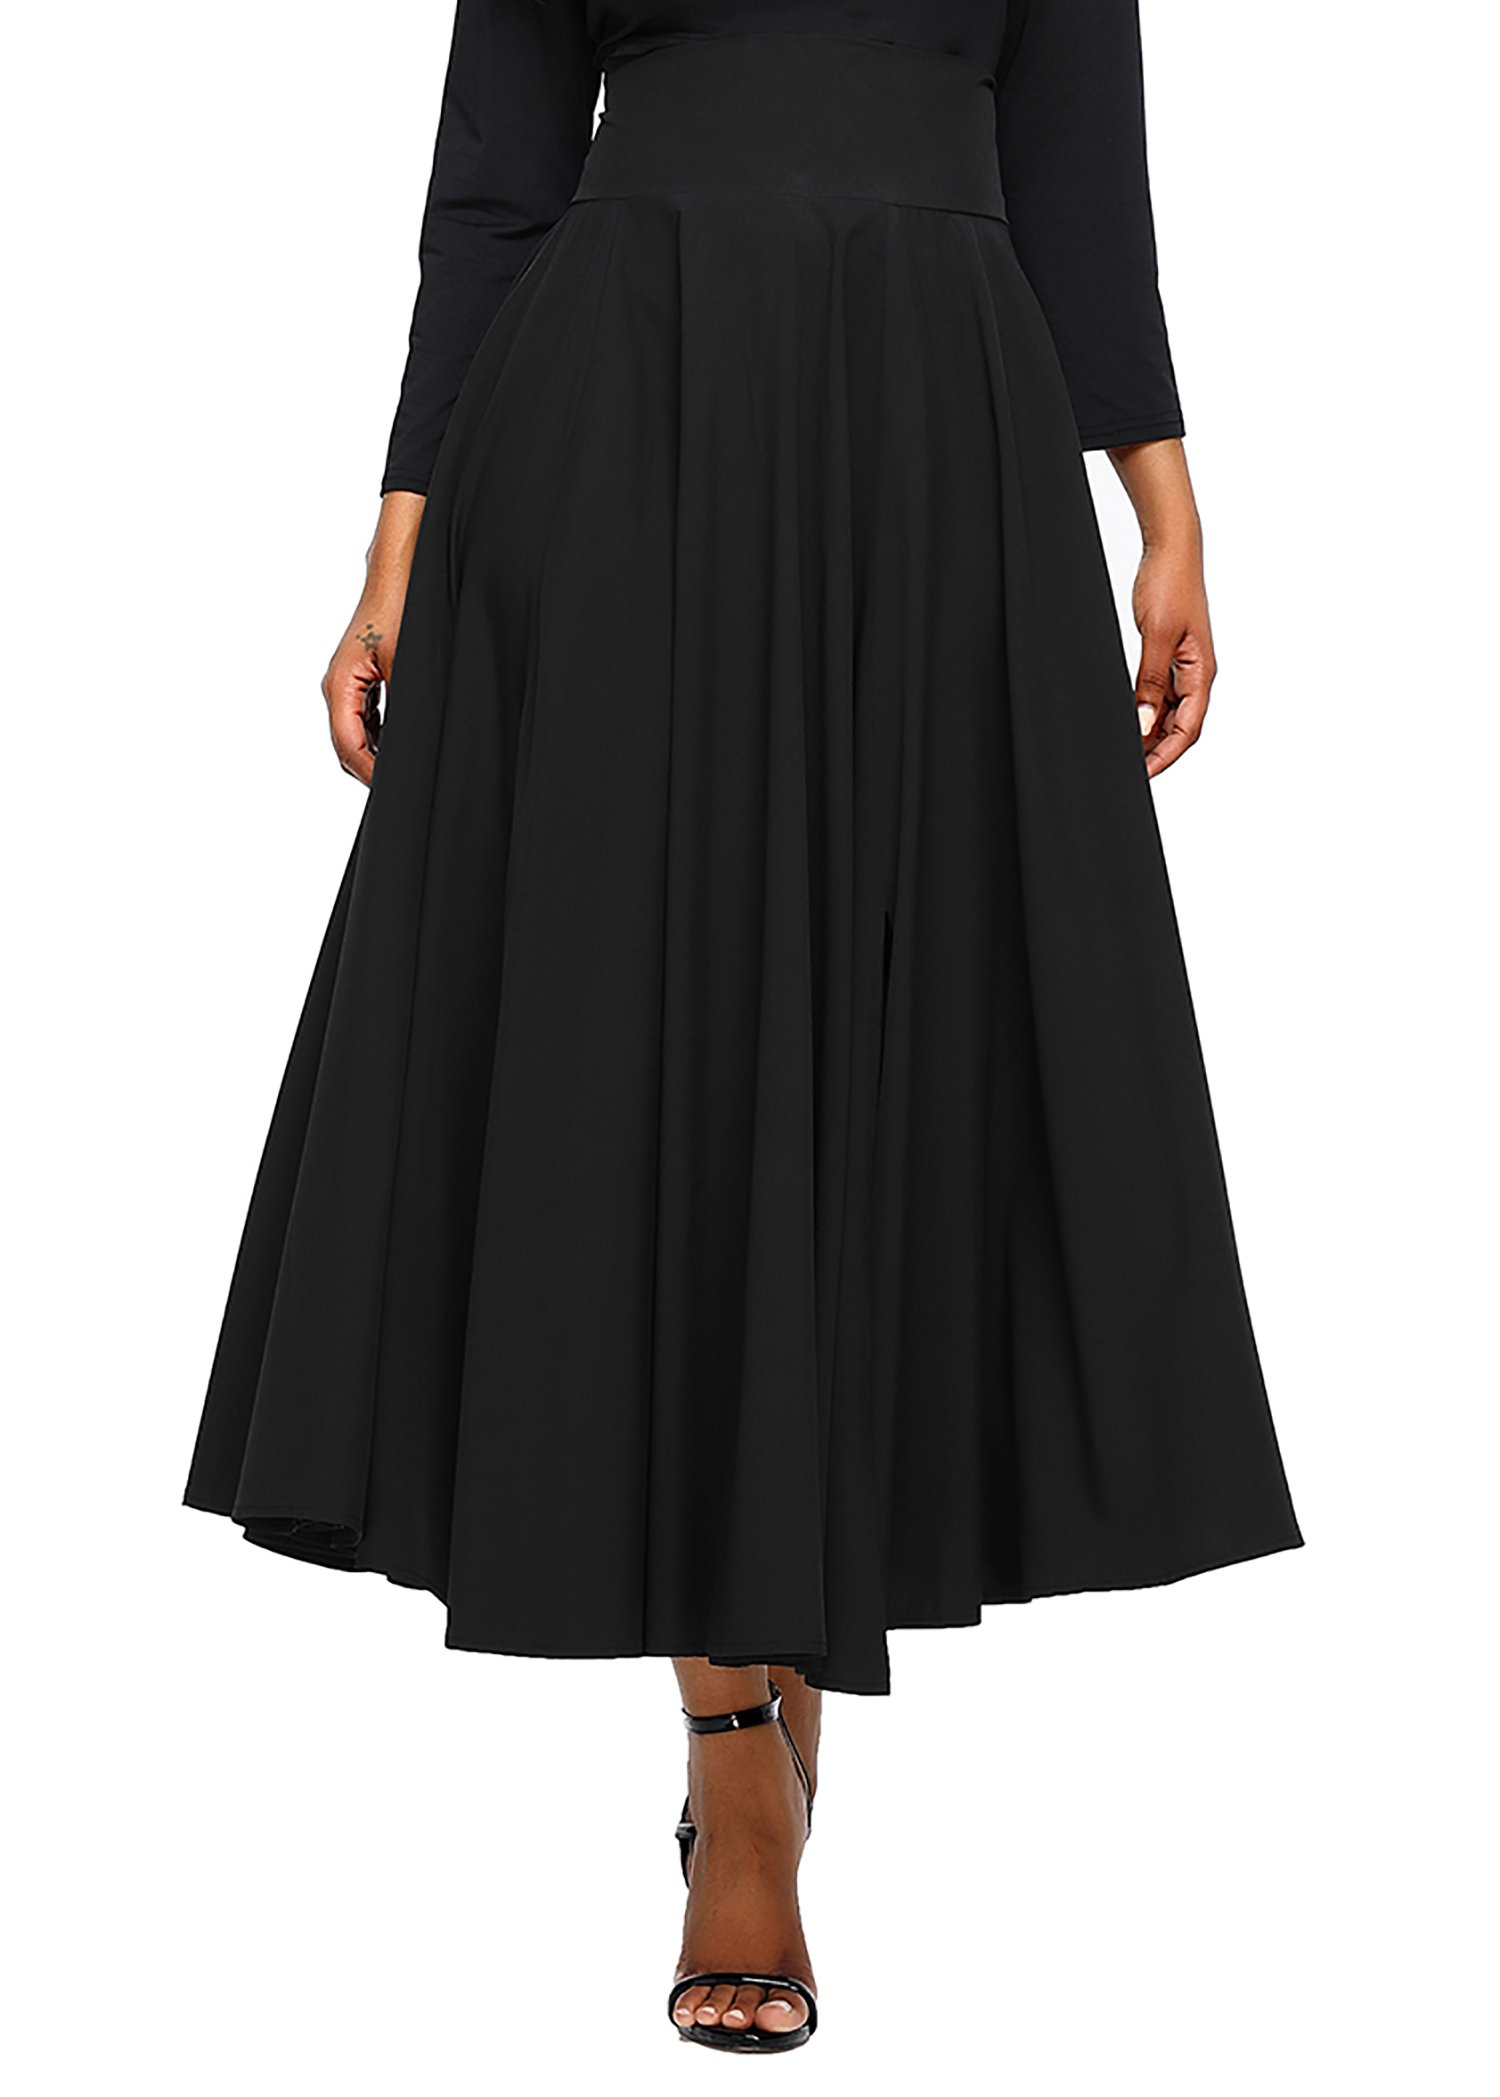 Diukia Women High Waist Casual A-Line Pleated Belted Long Maxi Skirt with Pocket Medium Black by Diukia